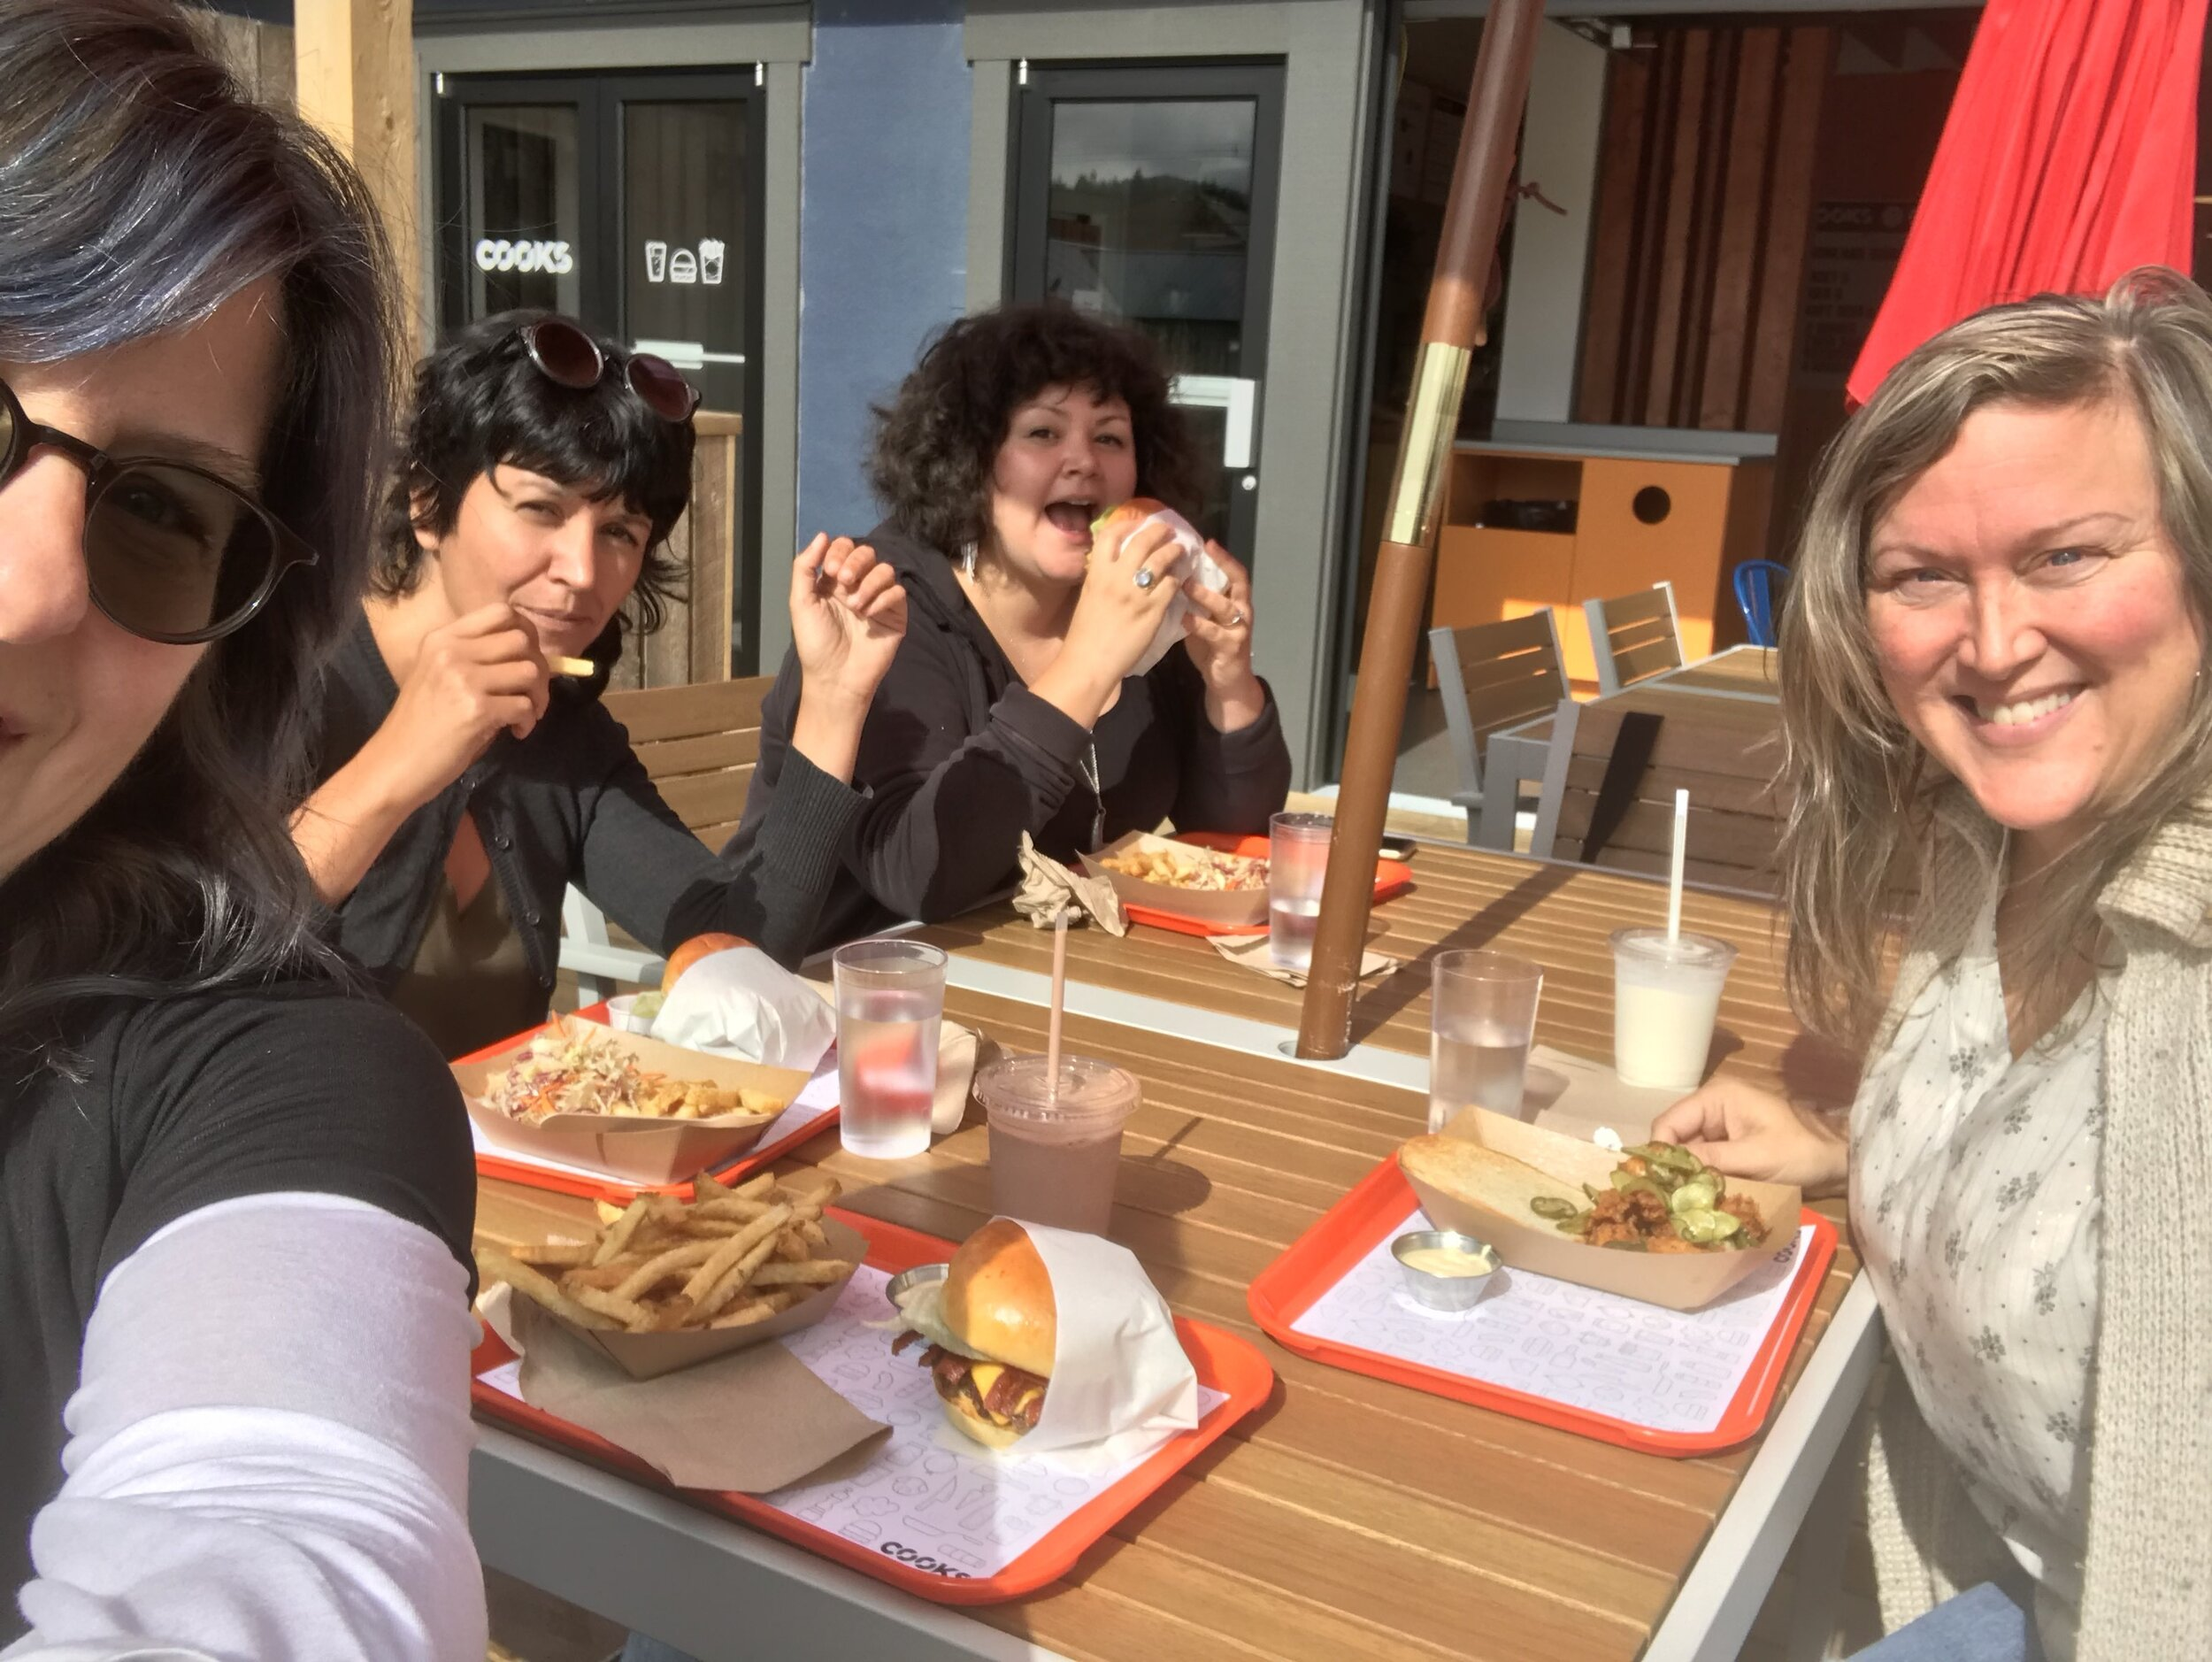 lunch with previous our world mentor julie (right) at cooks burger shack